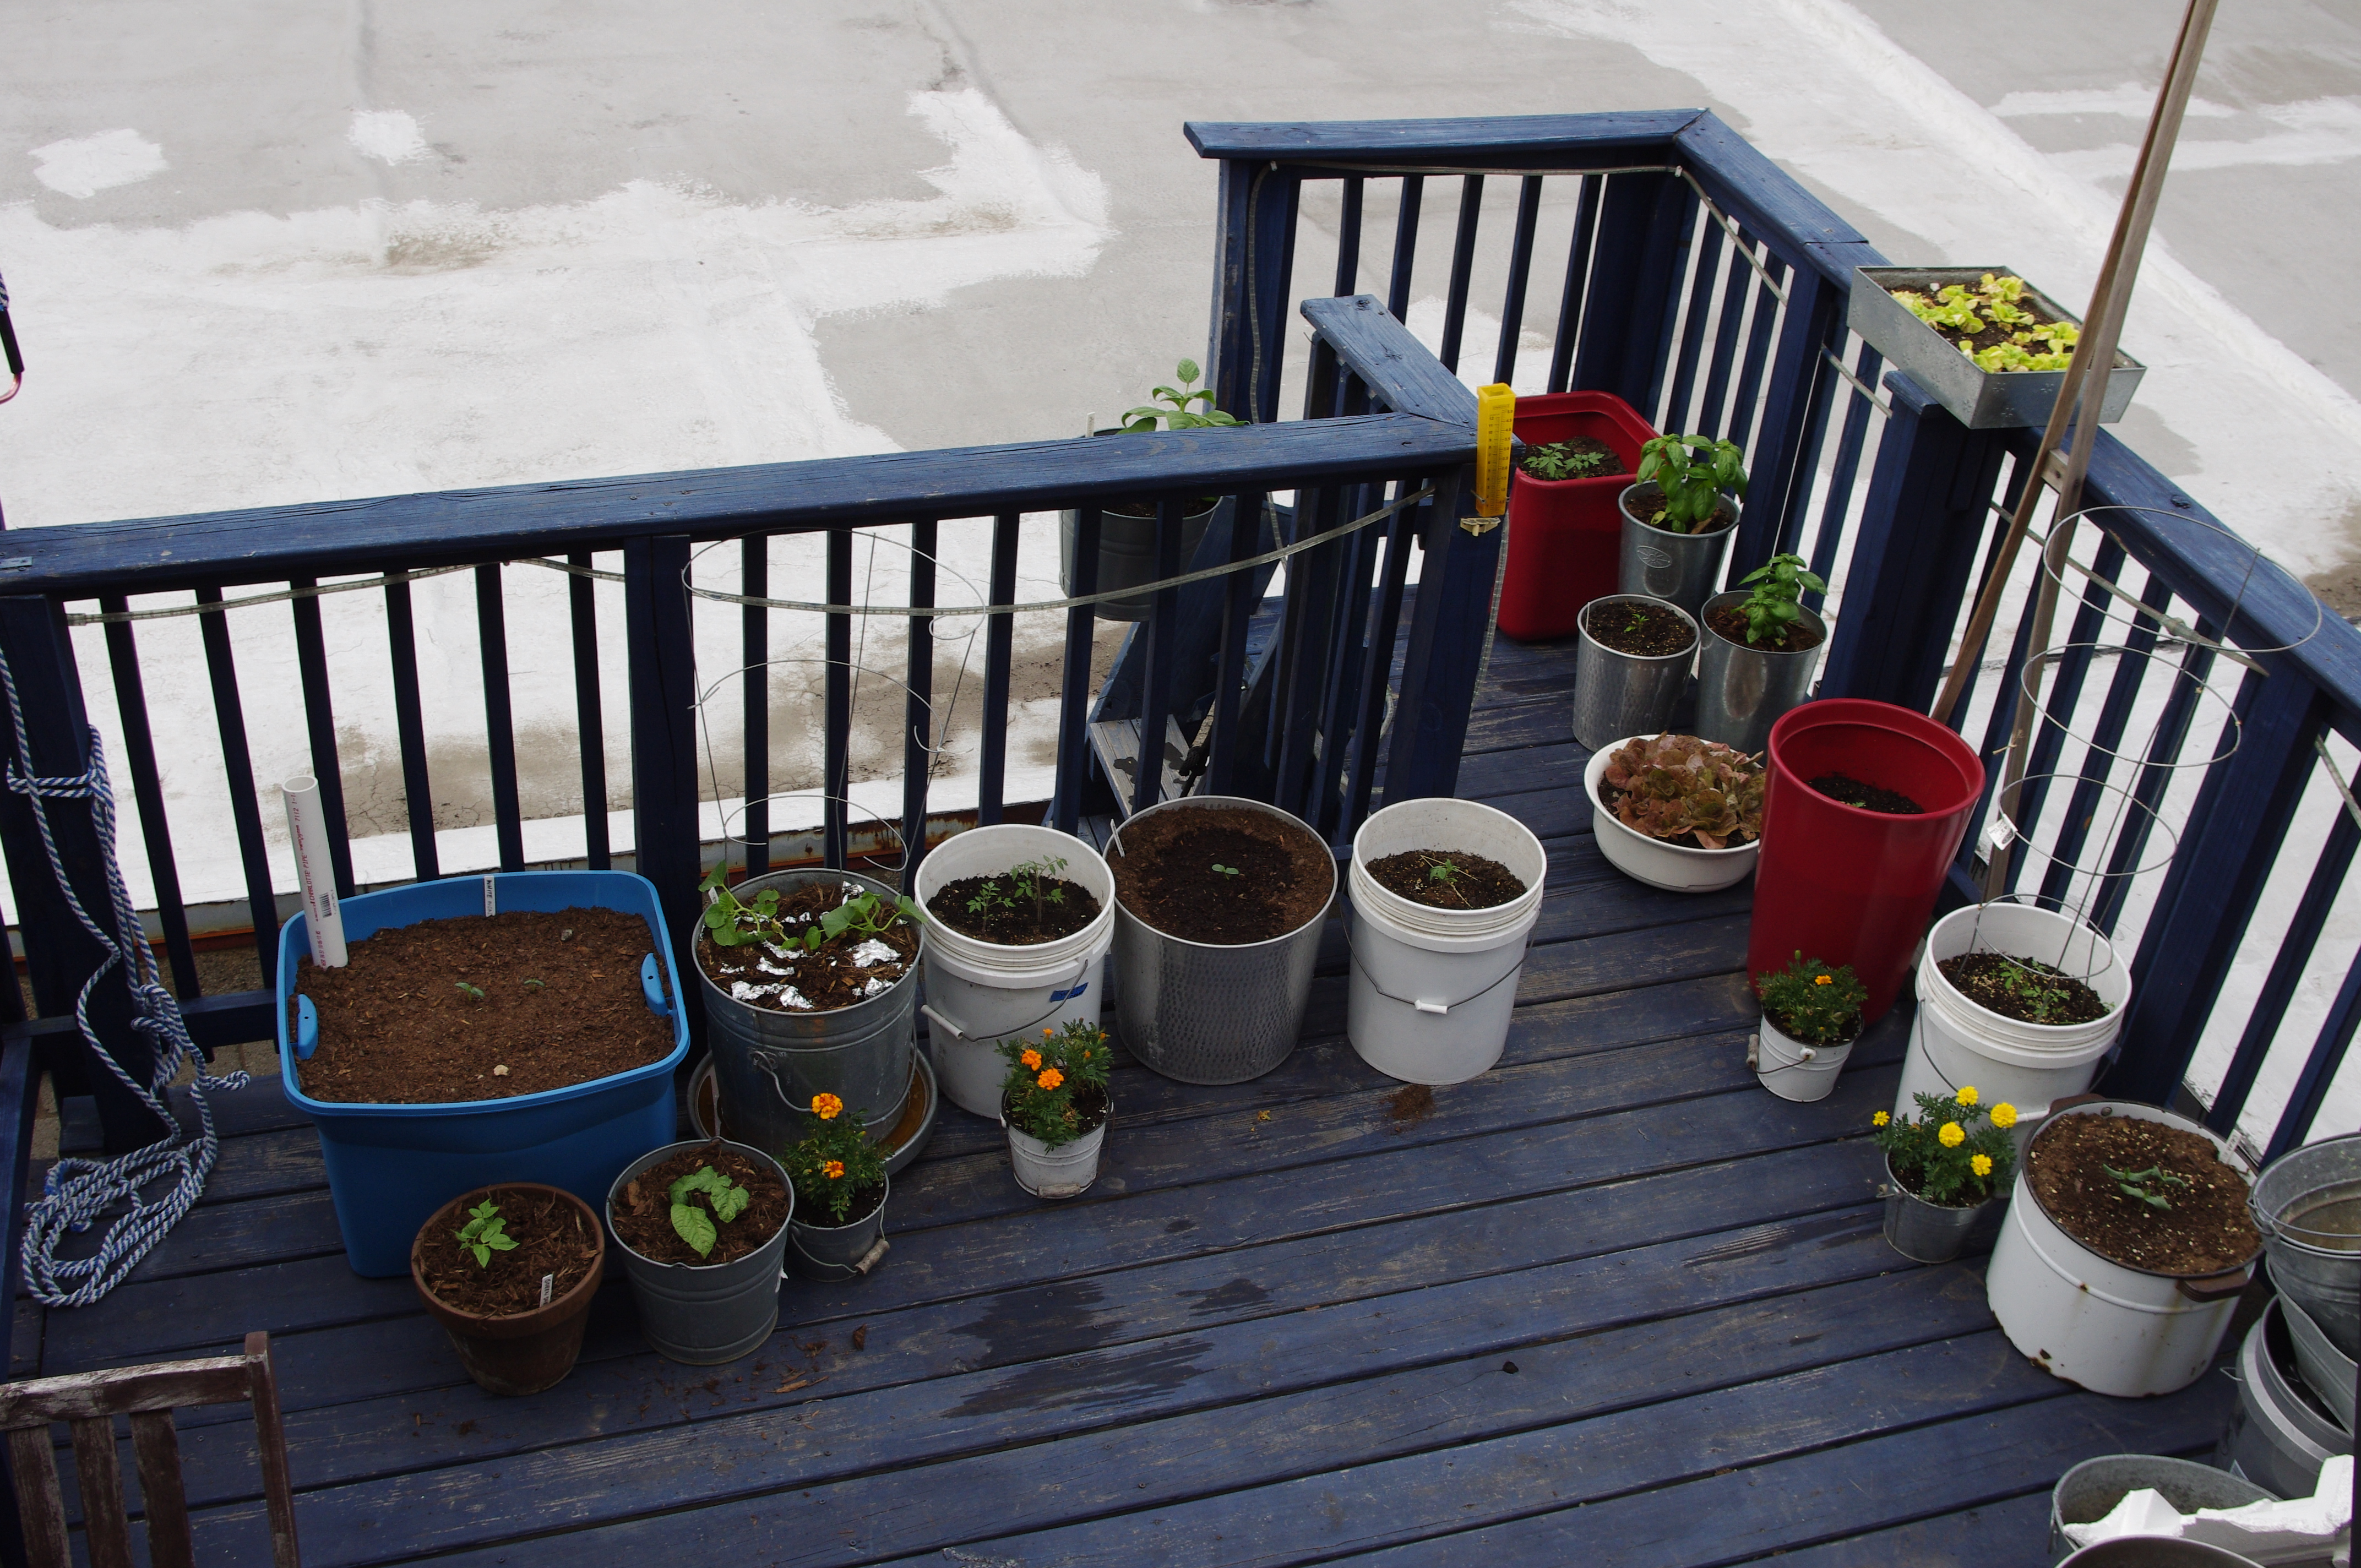 What Plants Will Grow Under A Deck : Under the deck but for now things are growing slowly on